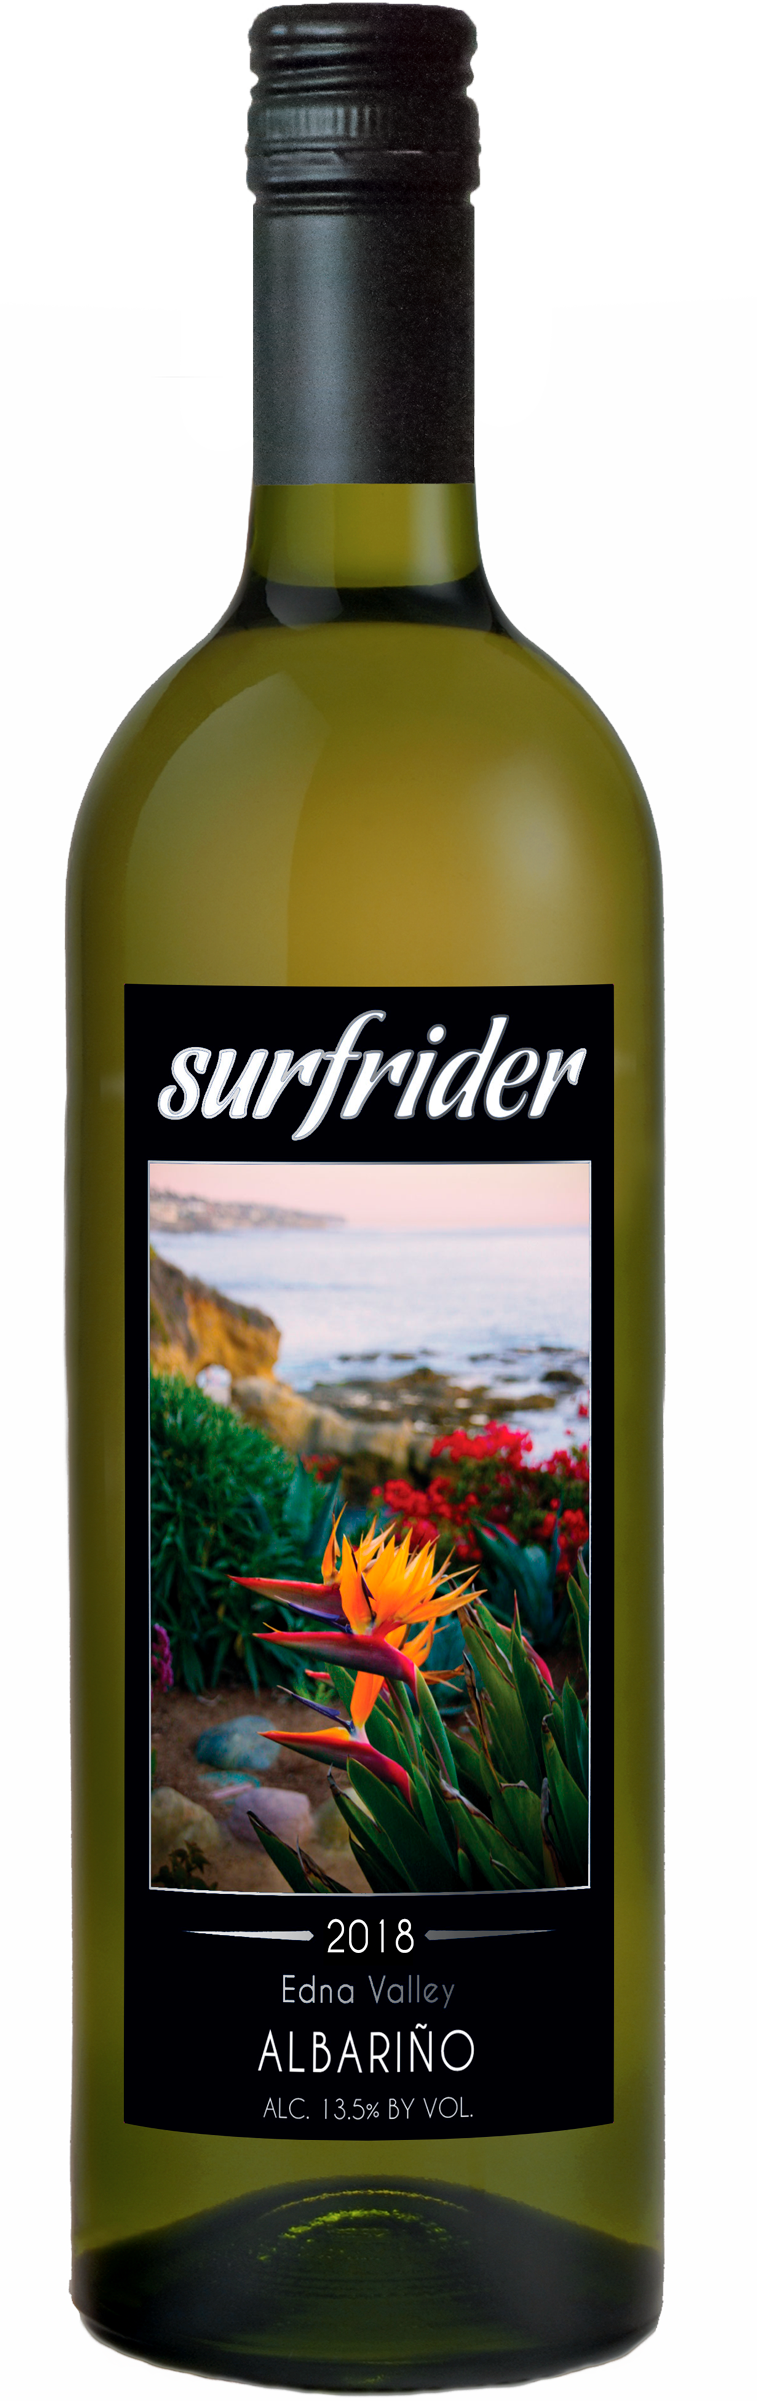 Product Image for 2018 Surfrider Albarino